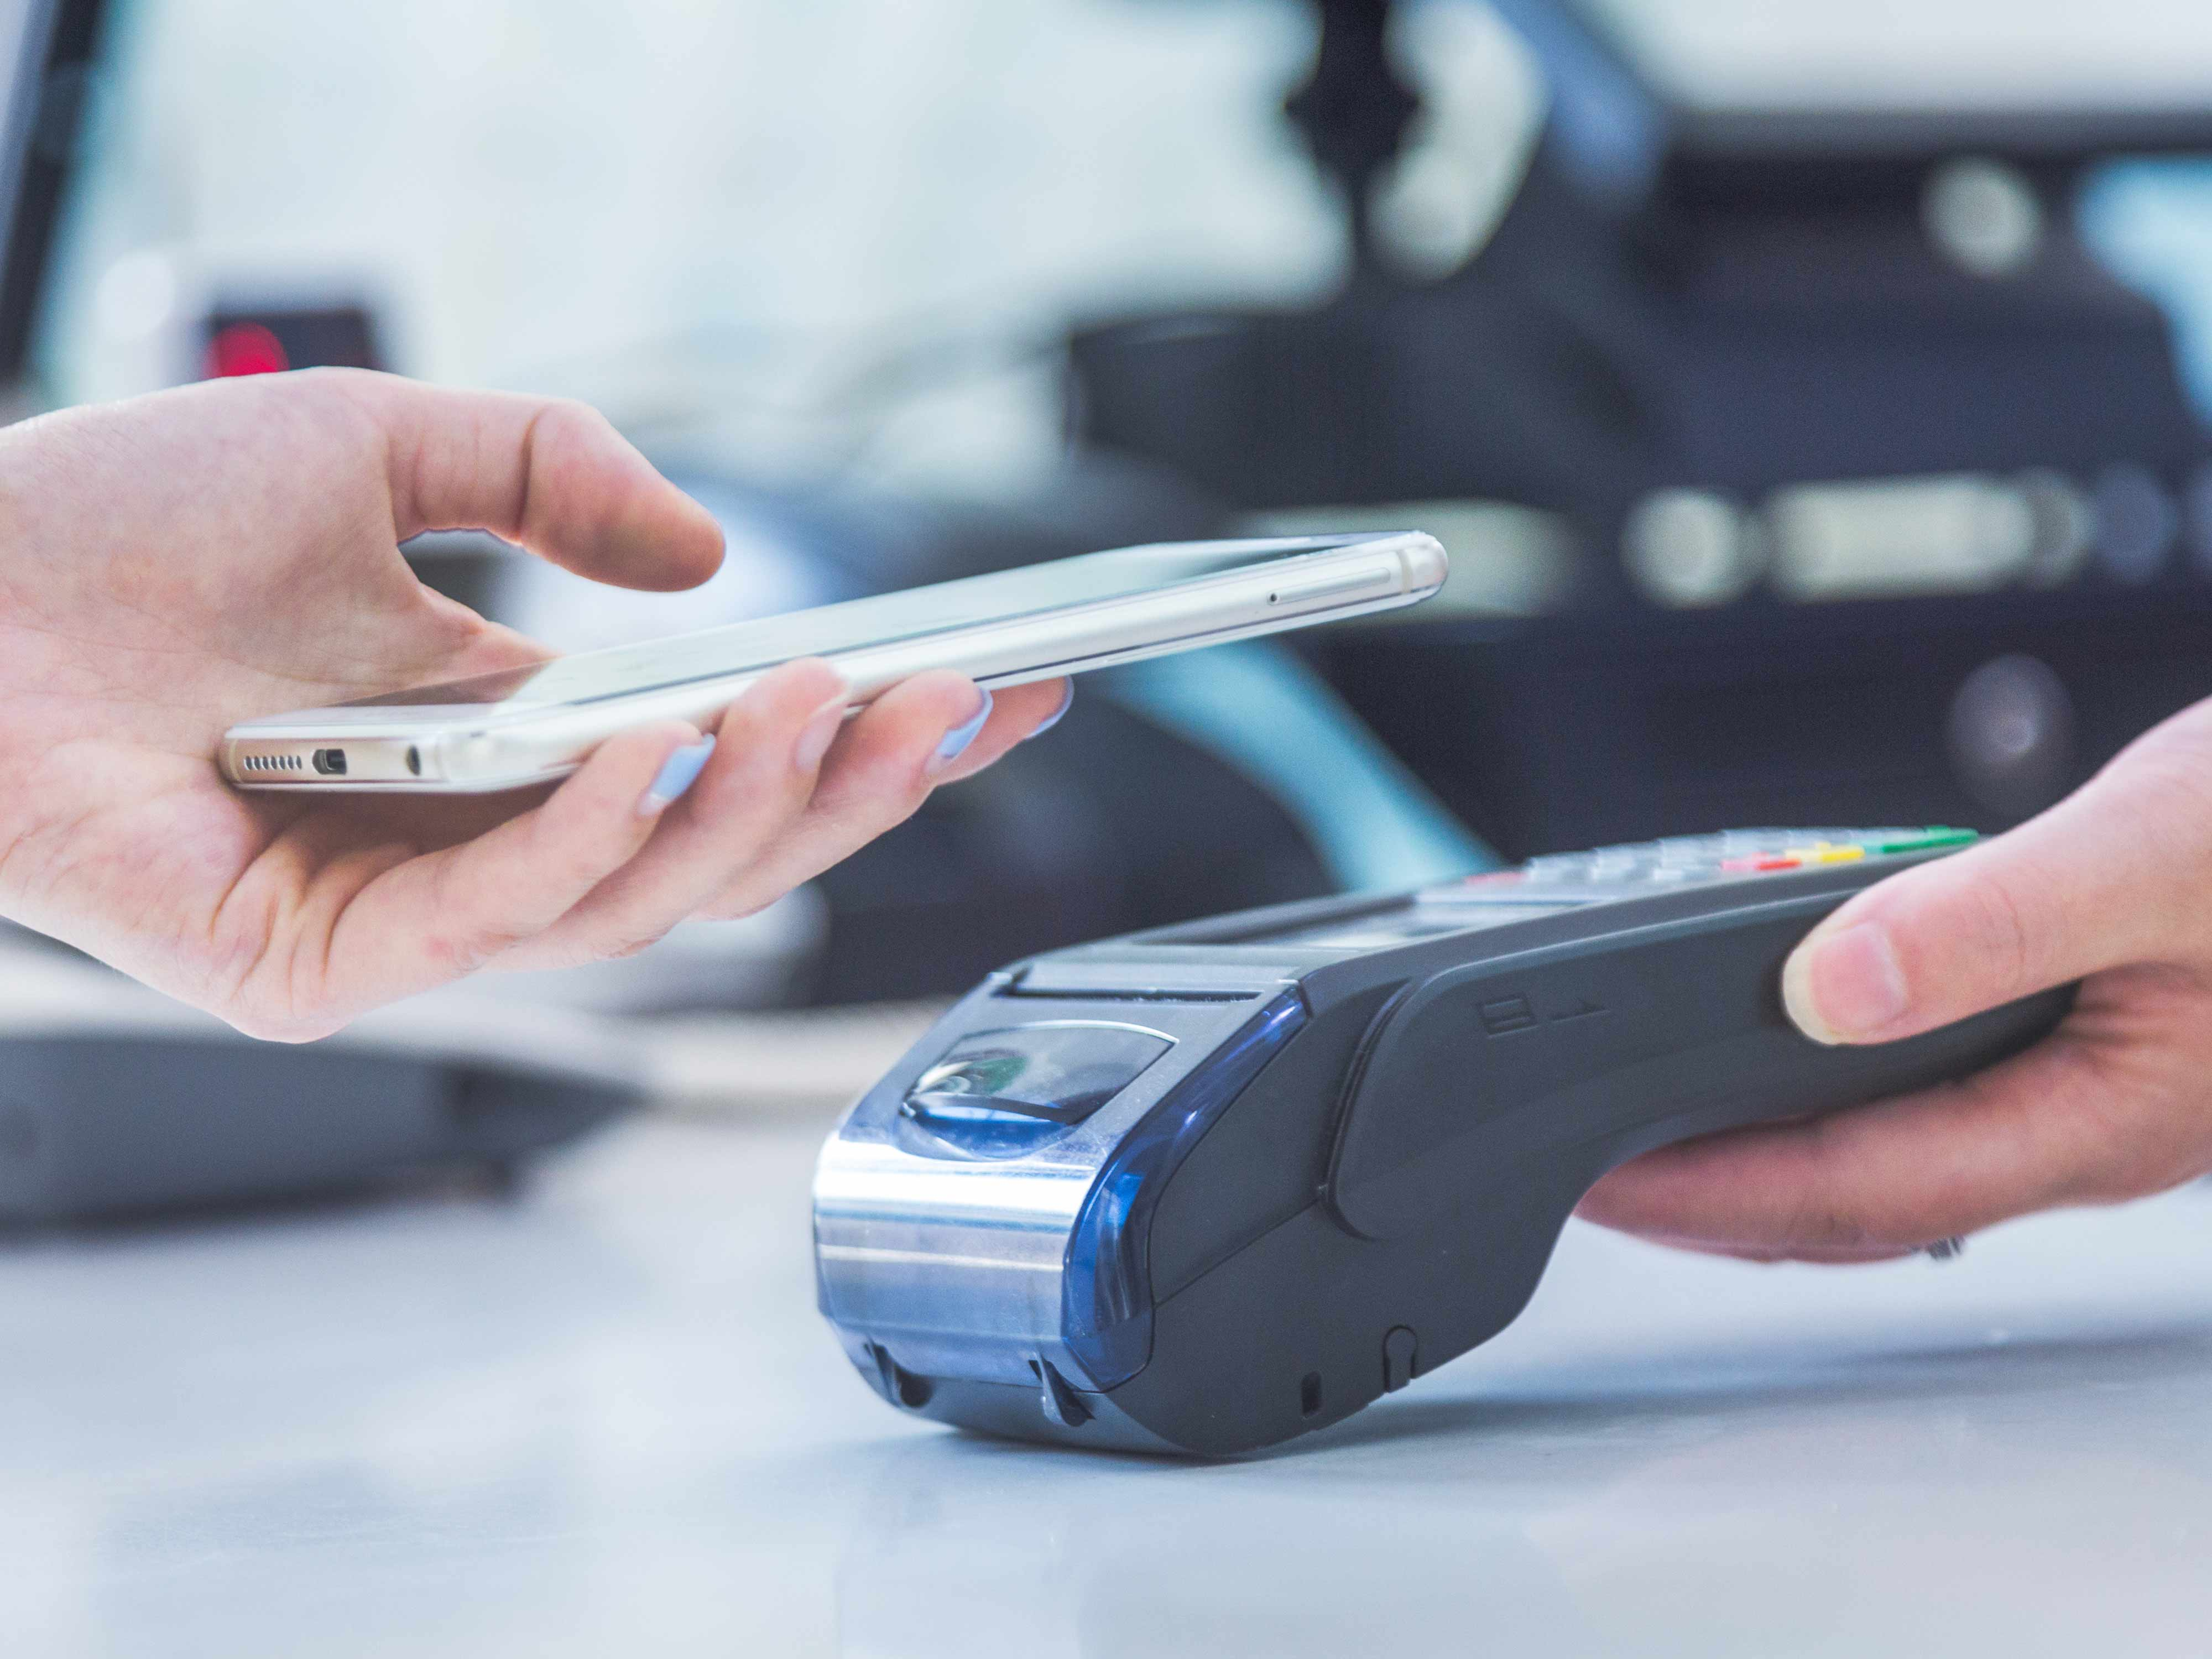 Would a bargaining code promote competition in the provision of digital wallet services for the benefit of Australian consumers?